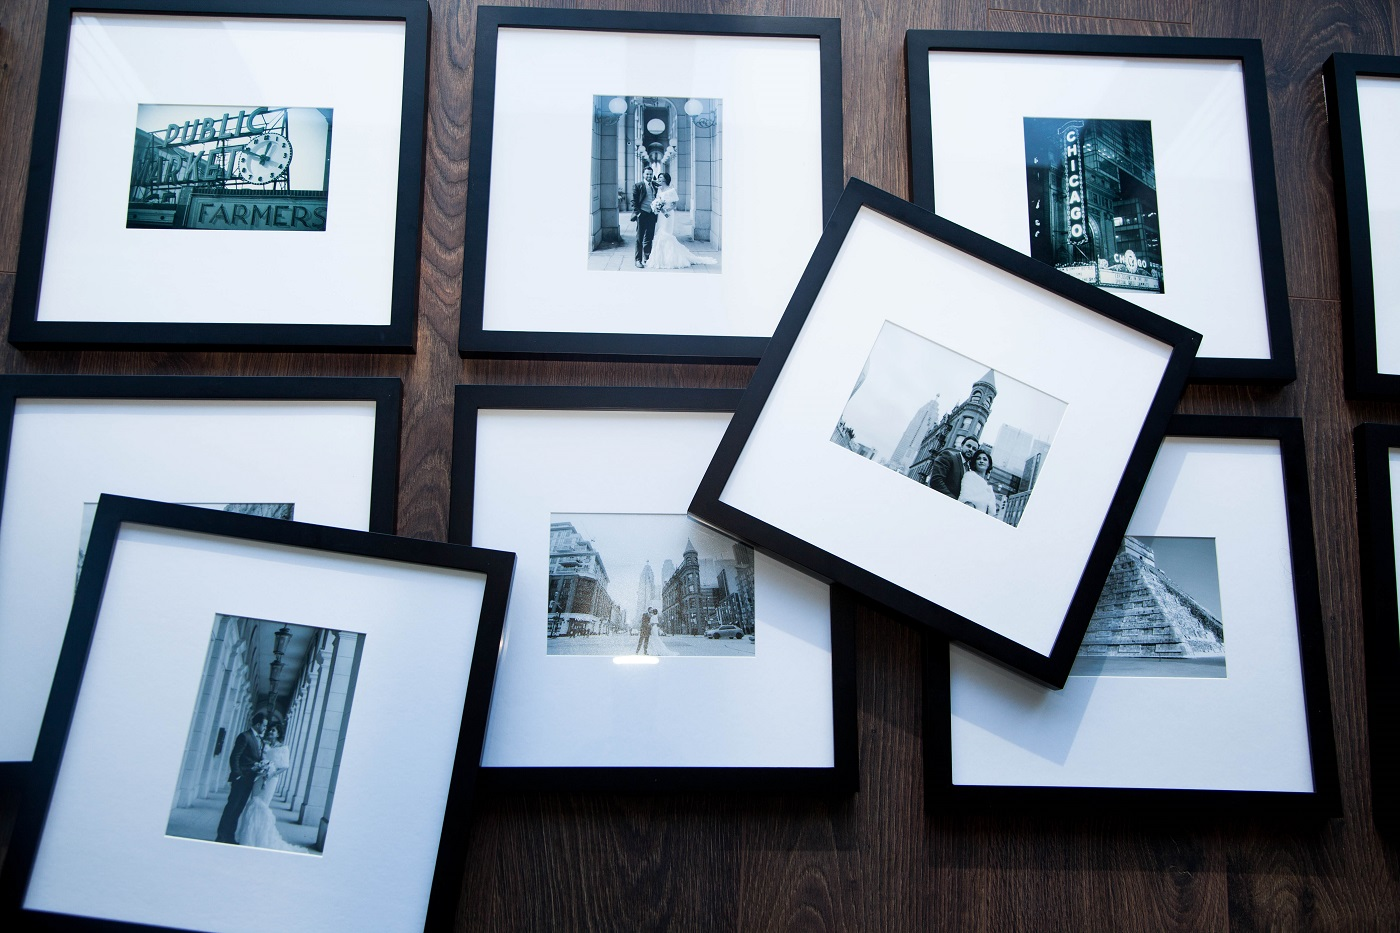 New Photo Gallery Wall